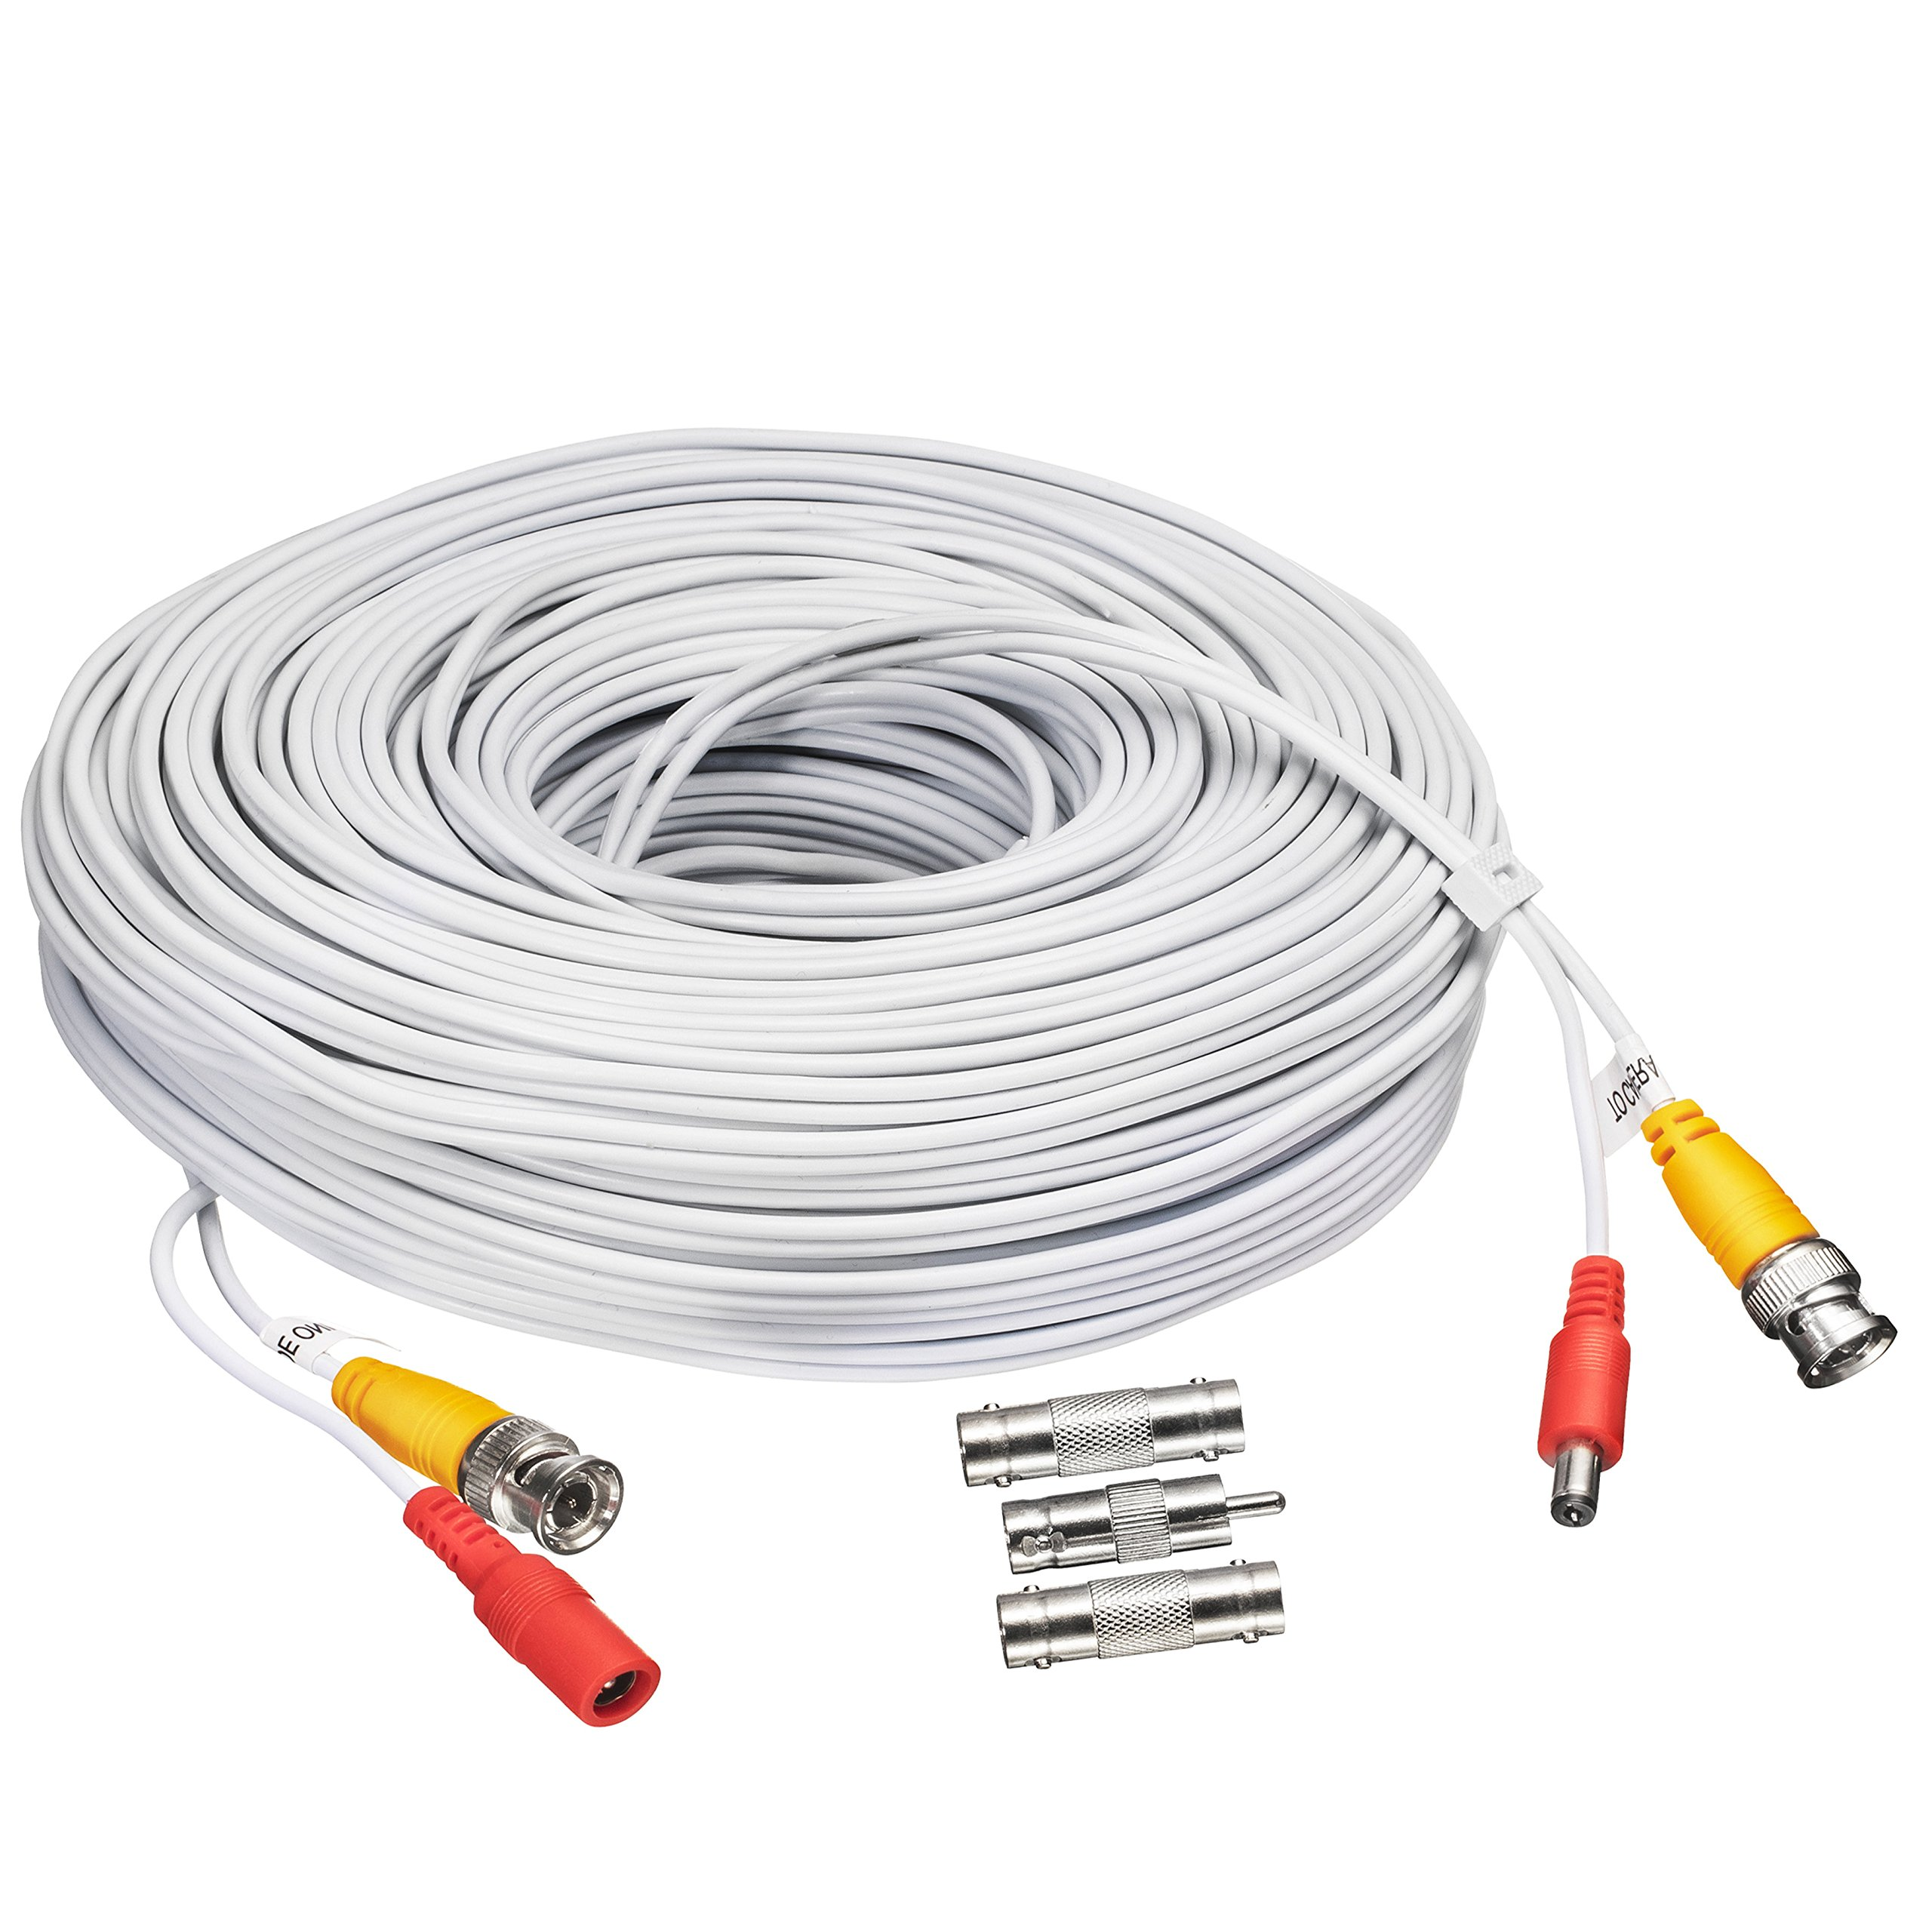 BNC CCTV DVR Cable Video Surveillance Security System Camera Coaxial Wire Cord Connector (100ft) Premade All-in-One with Power Cord - 100 Feet